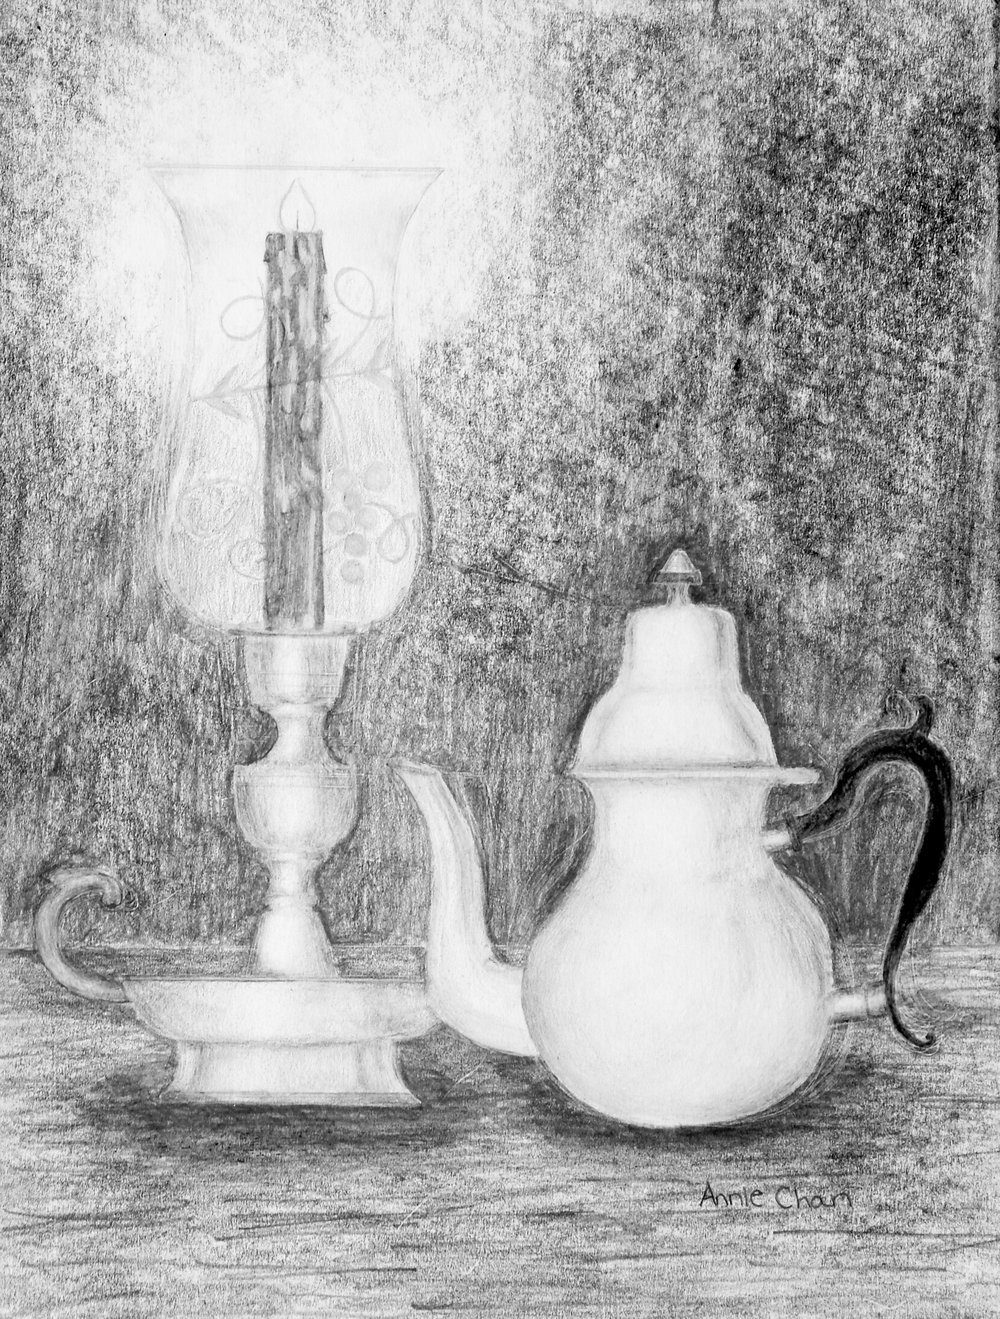 Annie Chan.13 yrs old.7th grade.pencil.Still Life with the Candle